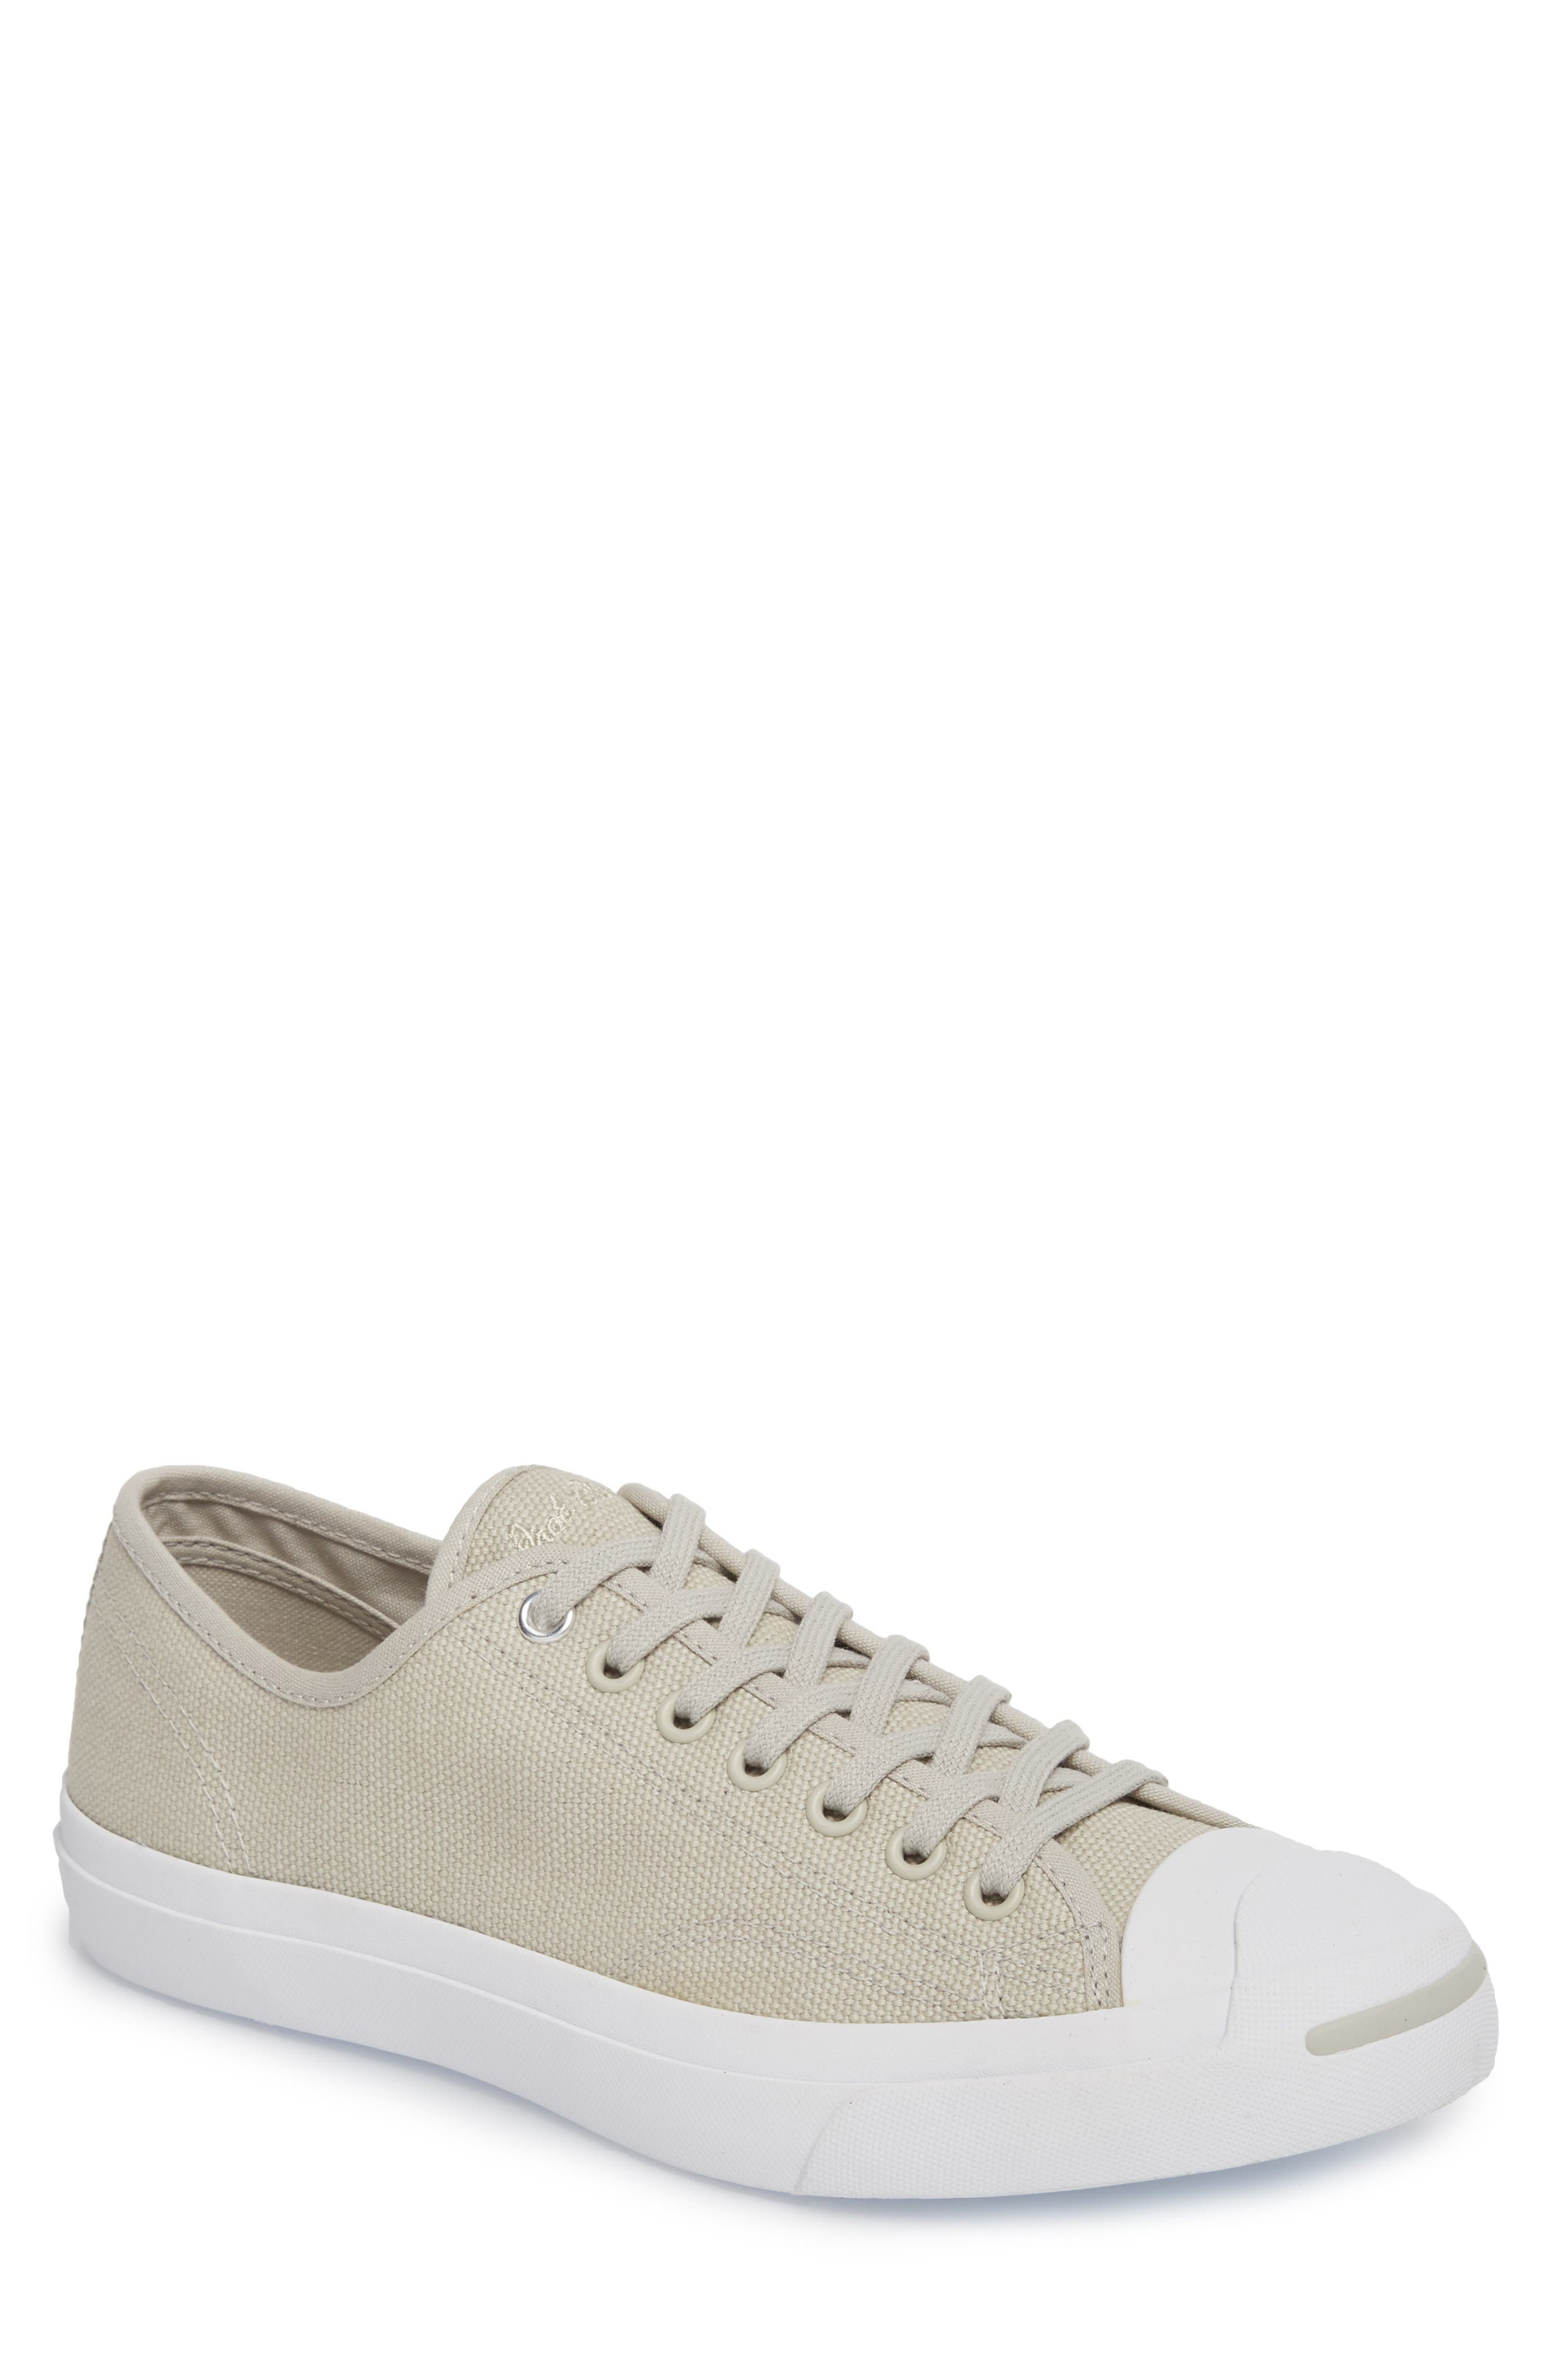 Jack Purcell Sneaker,                         Main,                         color, Pale Grey Canvas